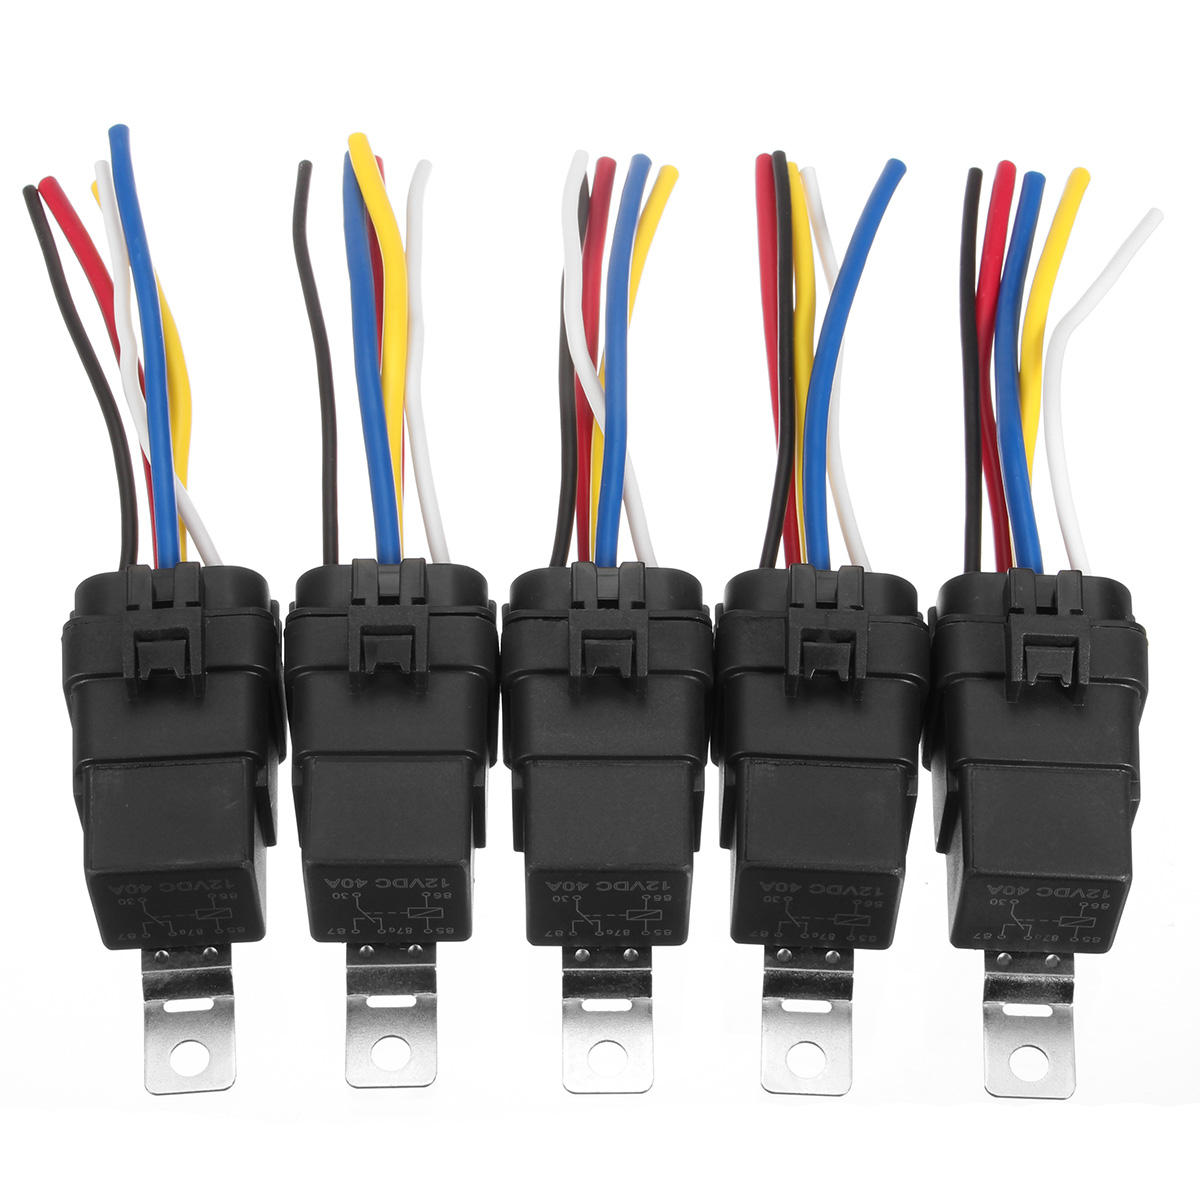 hight resolution of 5 pcs automotive relay switch harness 12awg wires waterproof 40 30amp 12vdc